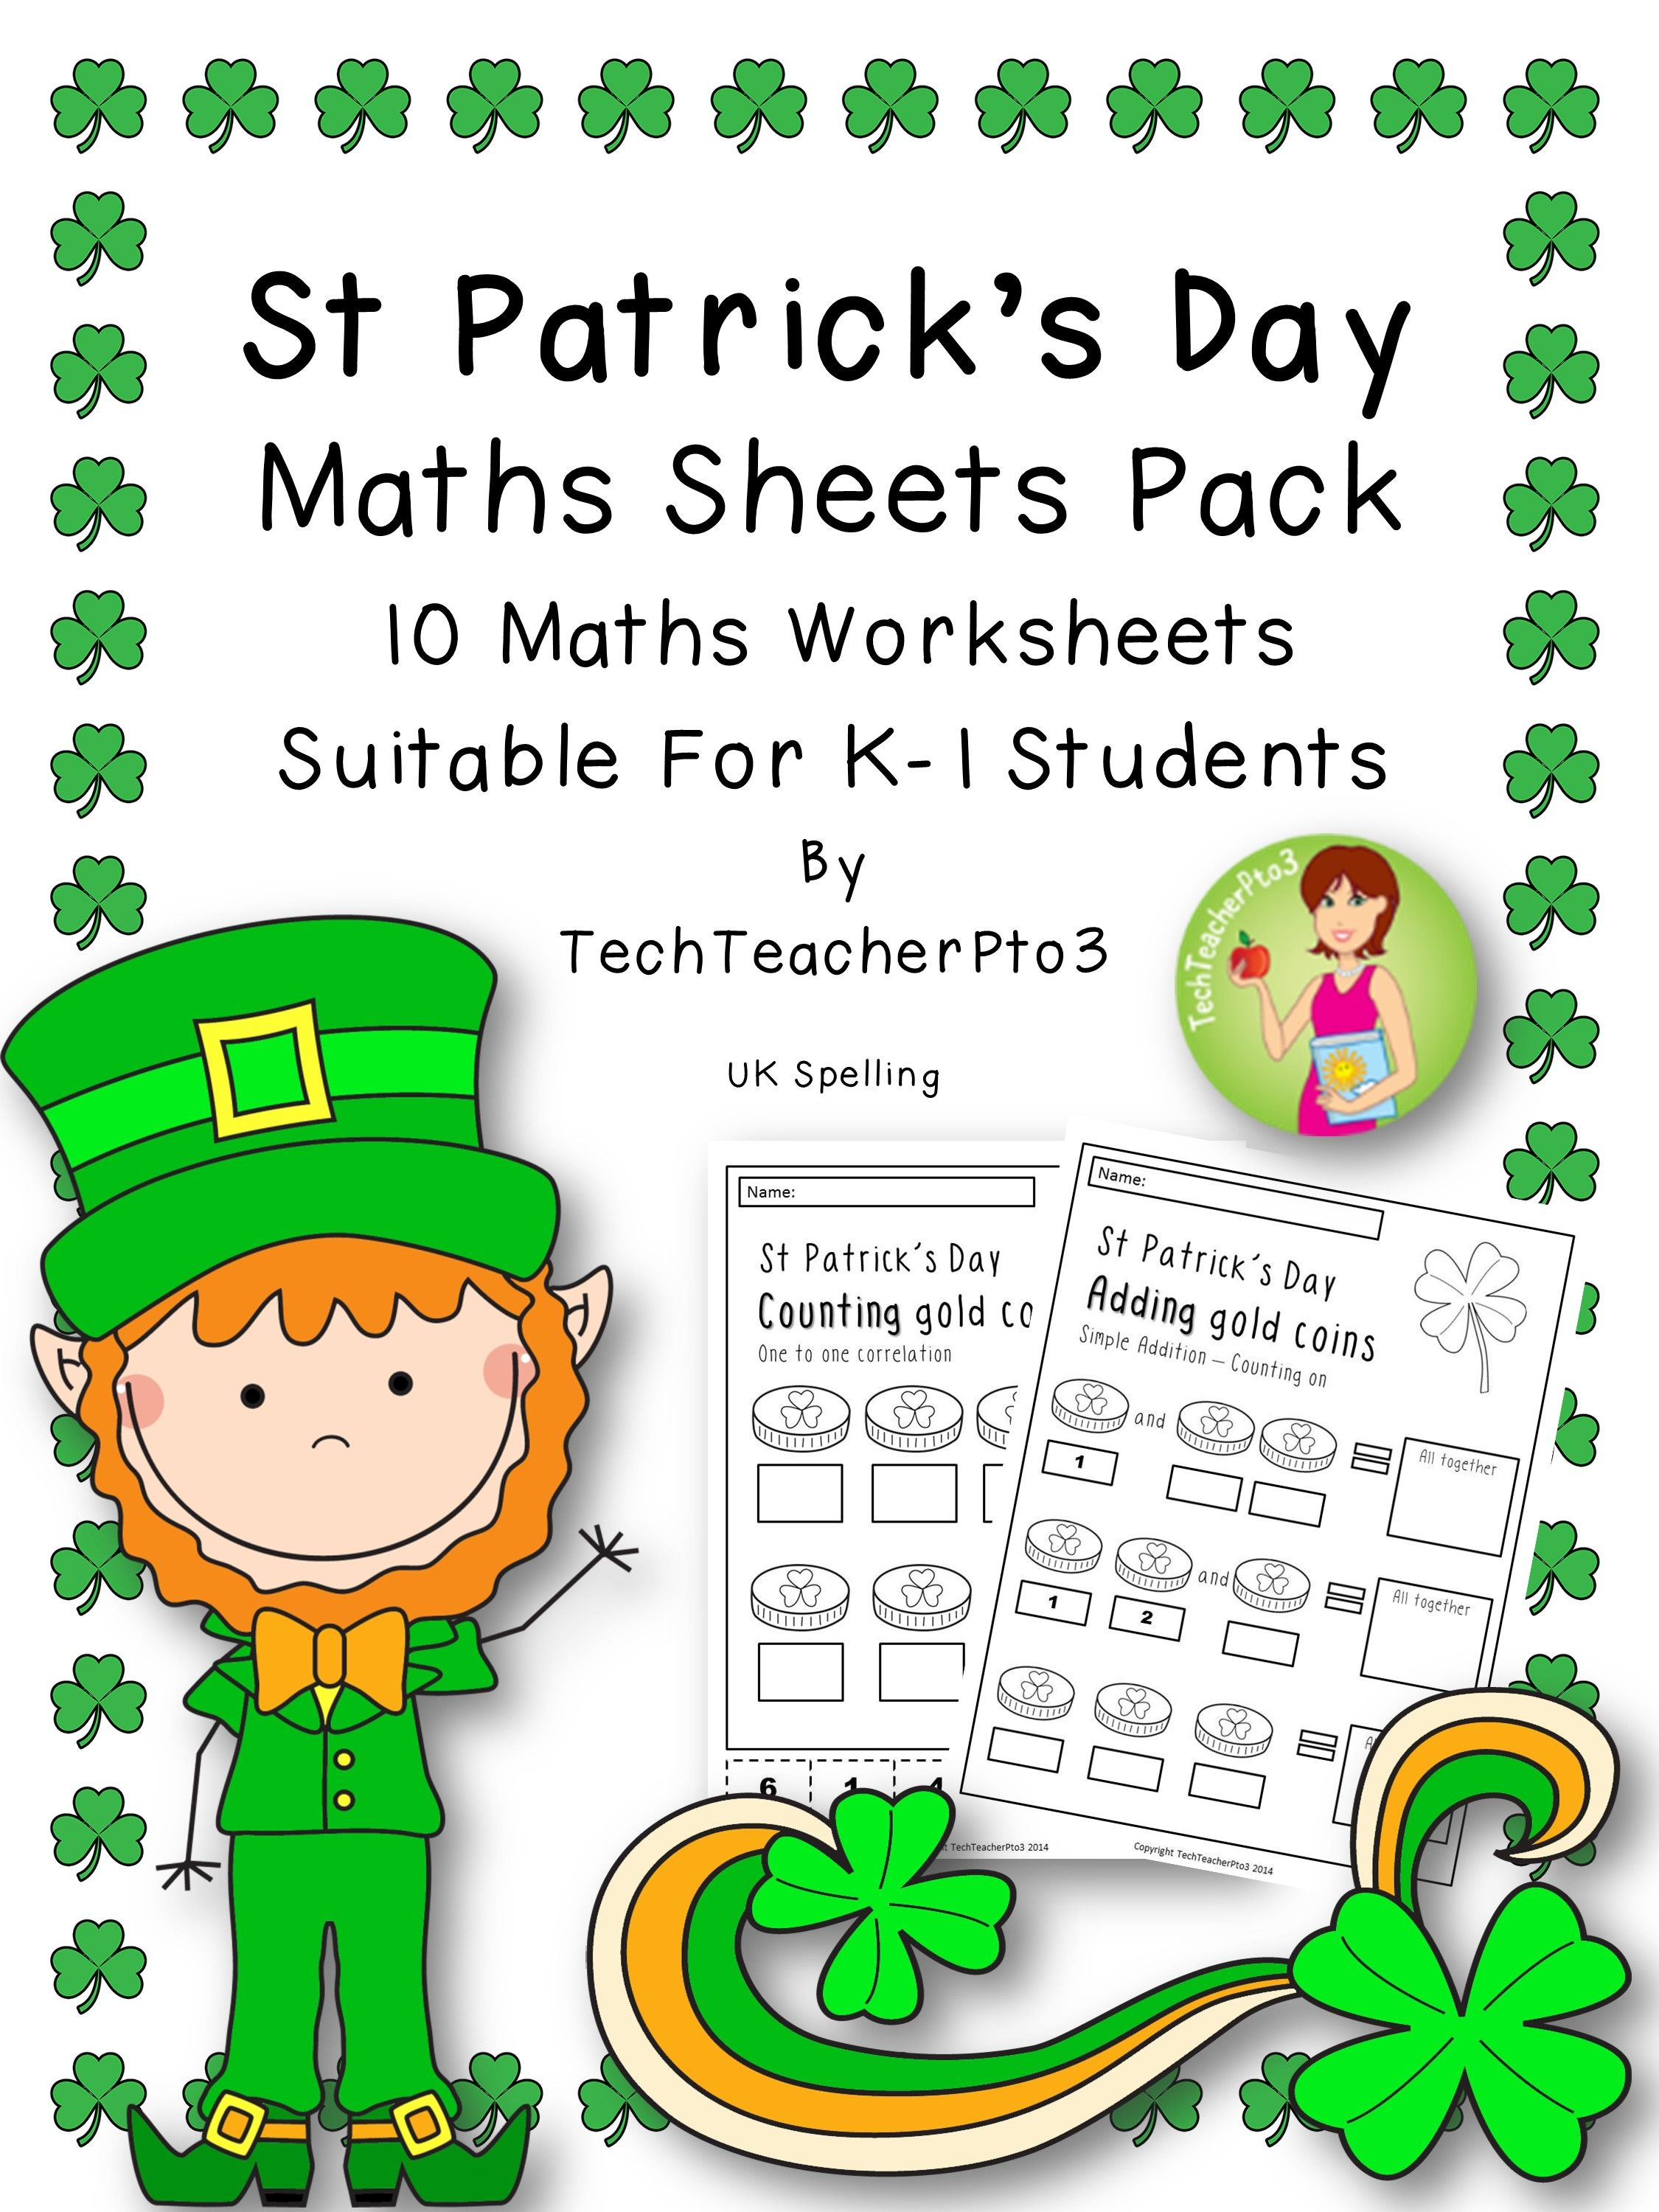 St Patrick's Day Maths Sheets Pack - UK Spelling.